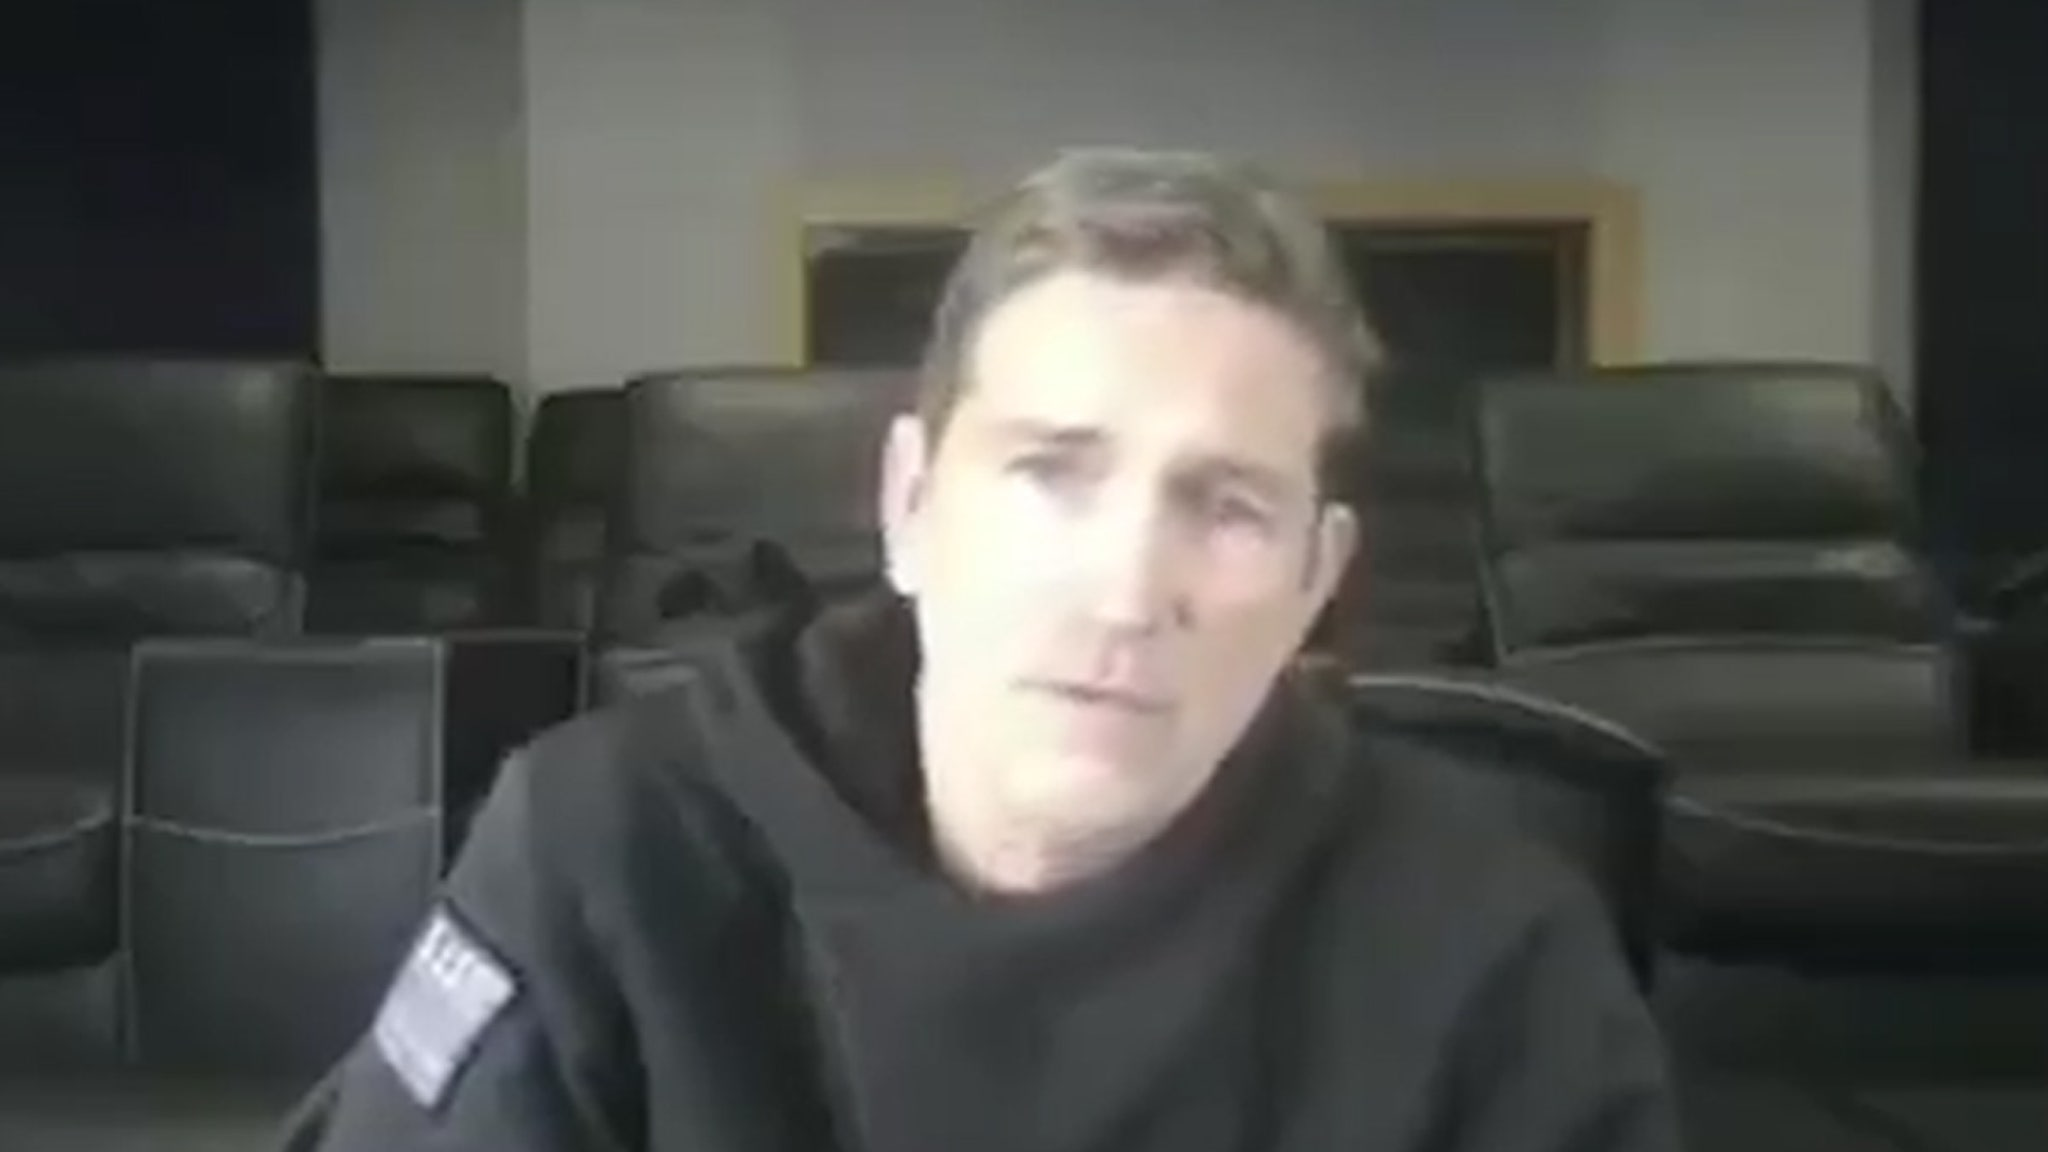 'Passion of the Christ' Star Jim Caviezel Pushes Adrenochrome Conspiracy thumbnail